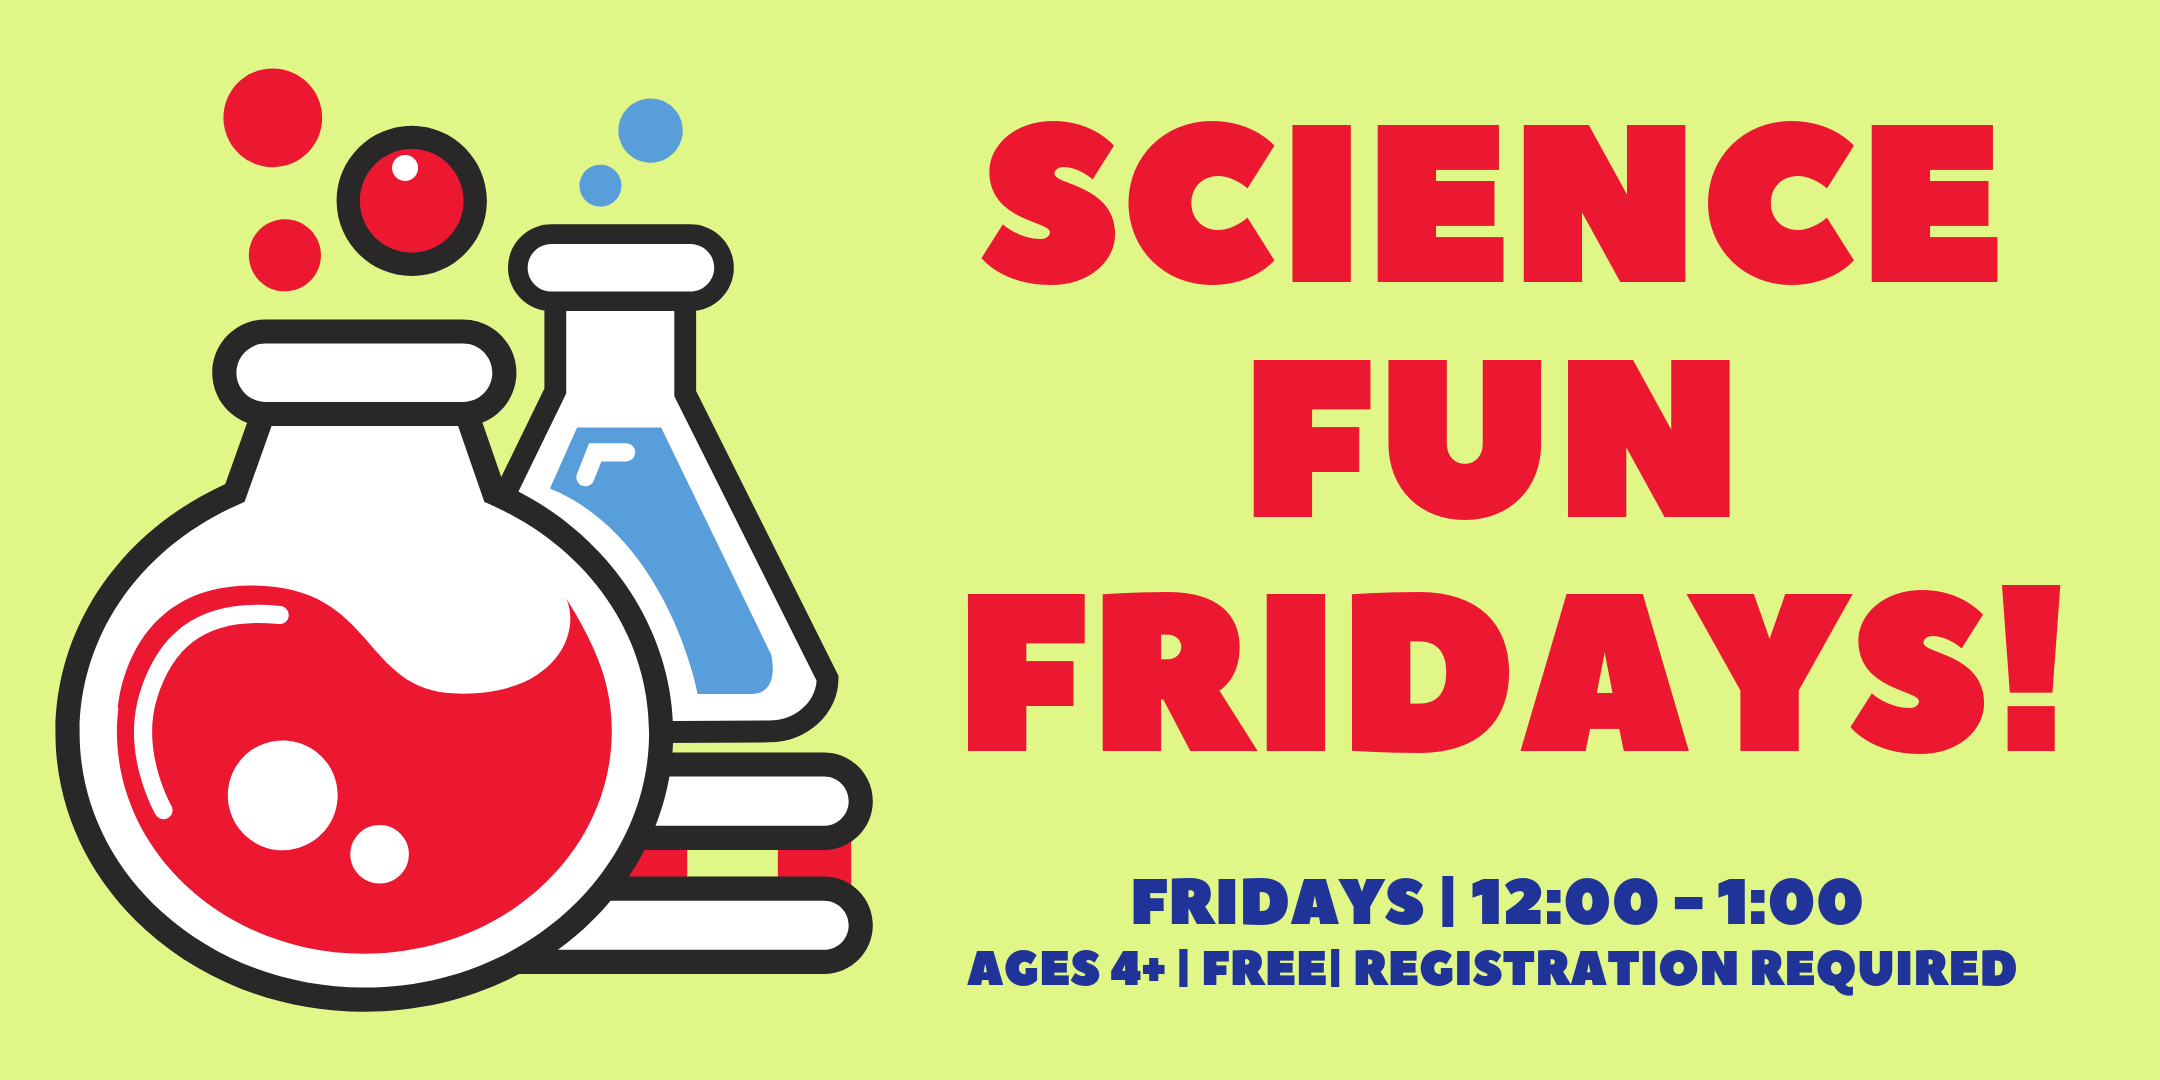 Science fun fridays 12-1